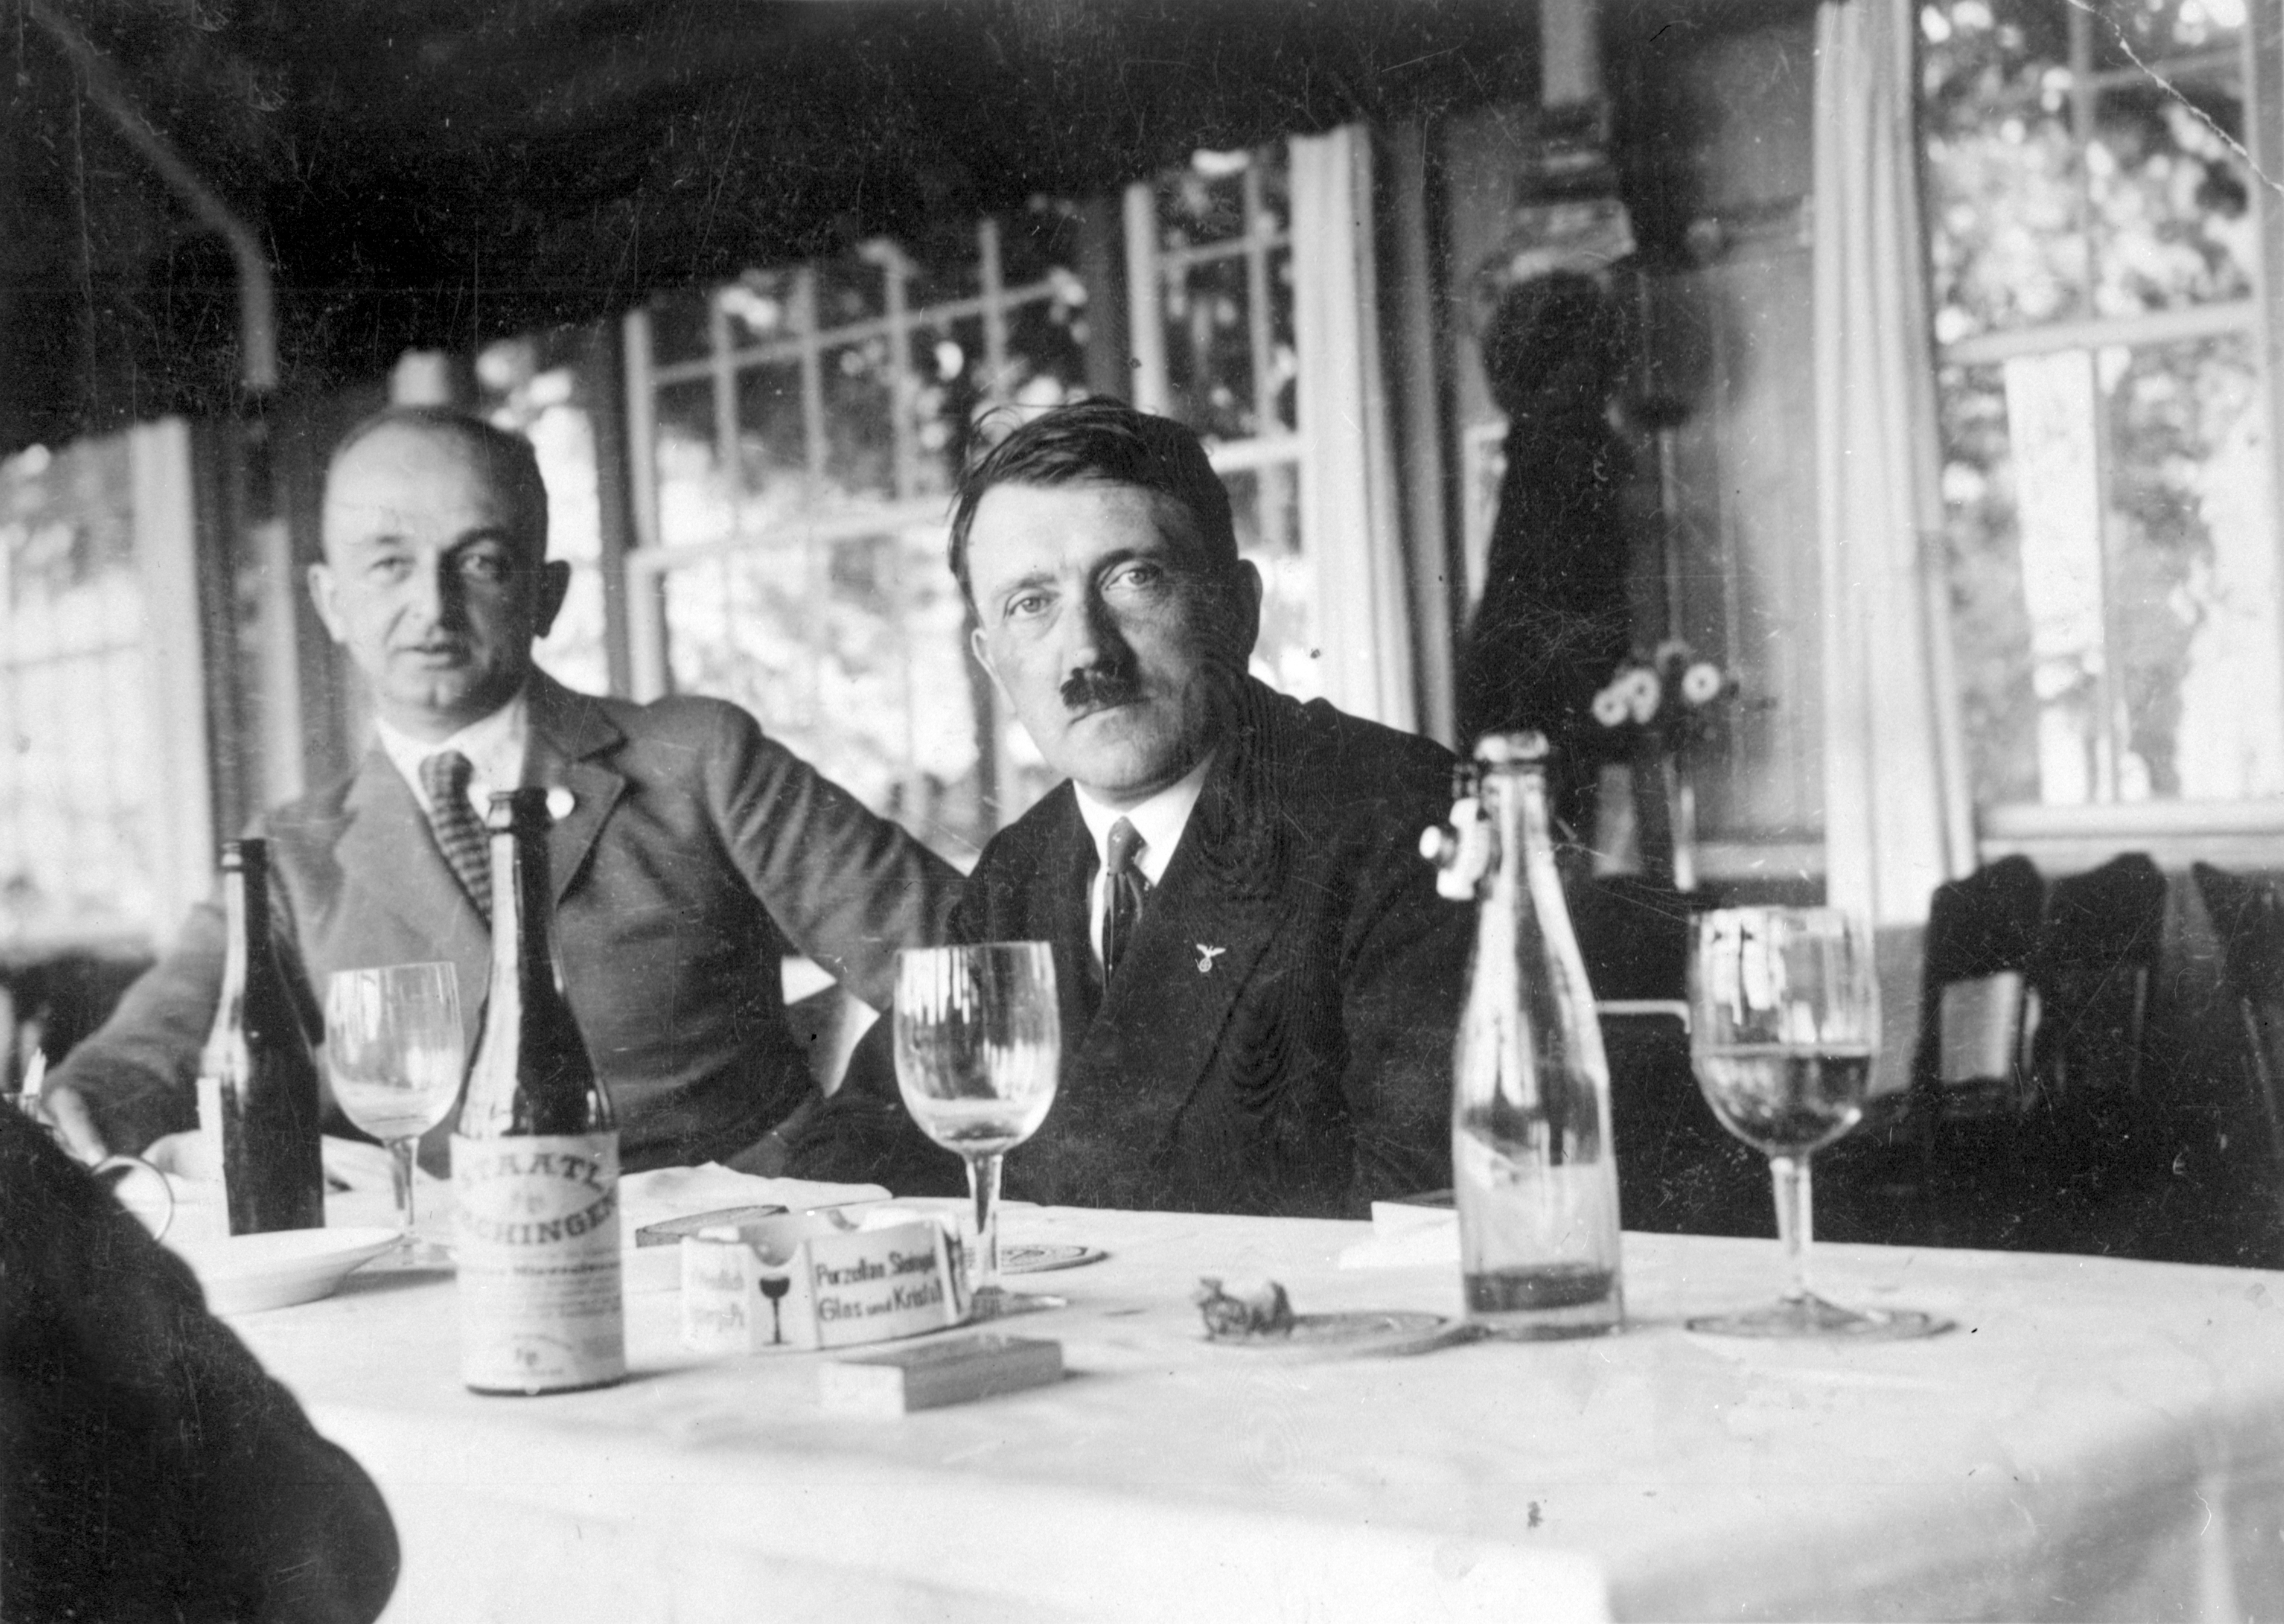 Adolf Hitler in the restaurant Osteria Bavaria in Munich, from Eva Braun's albums